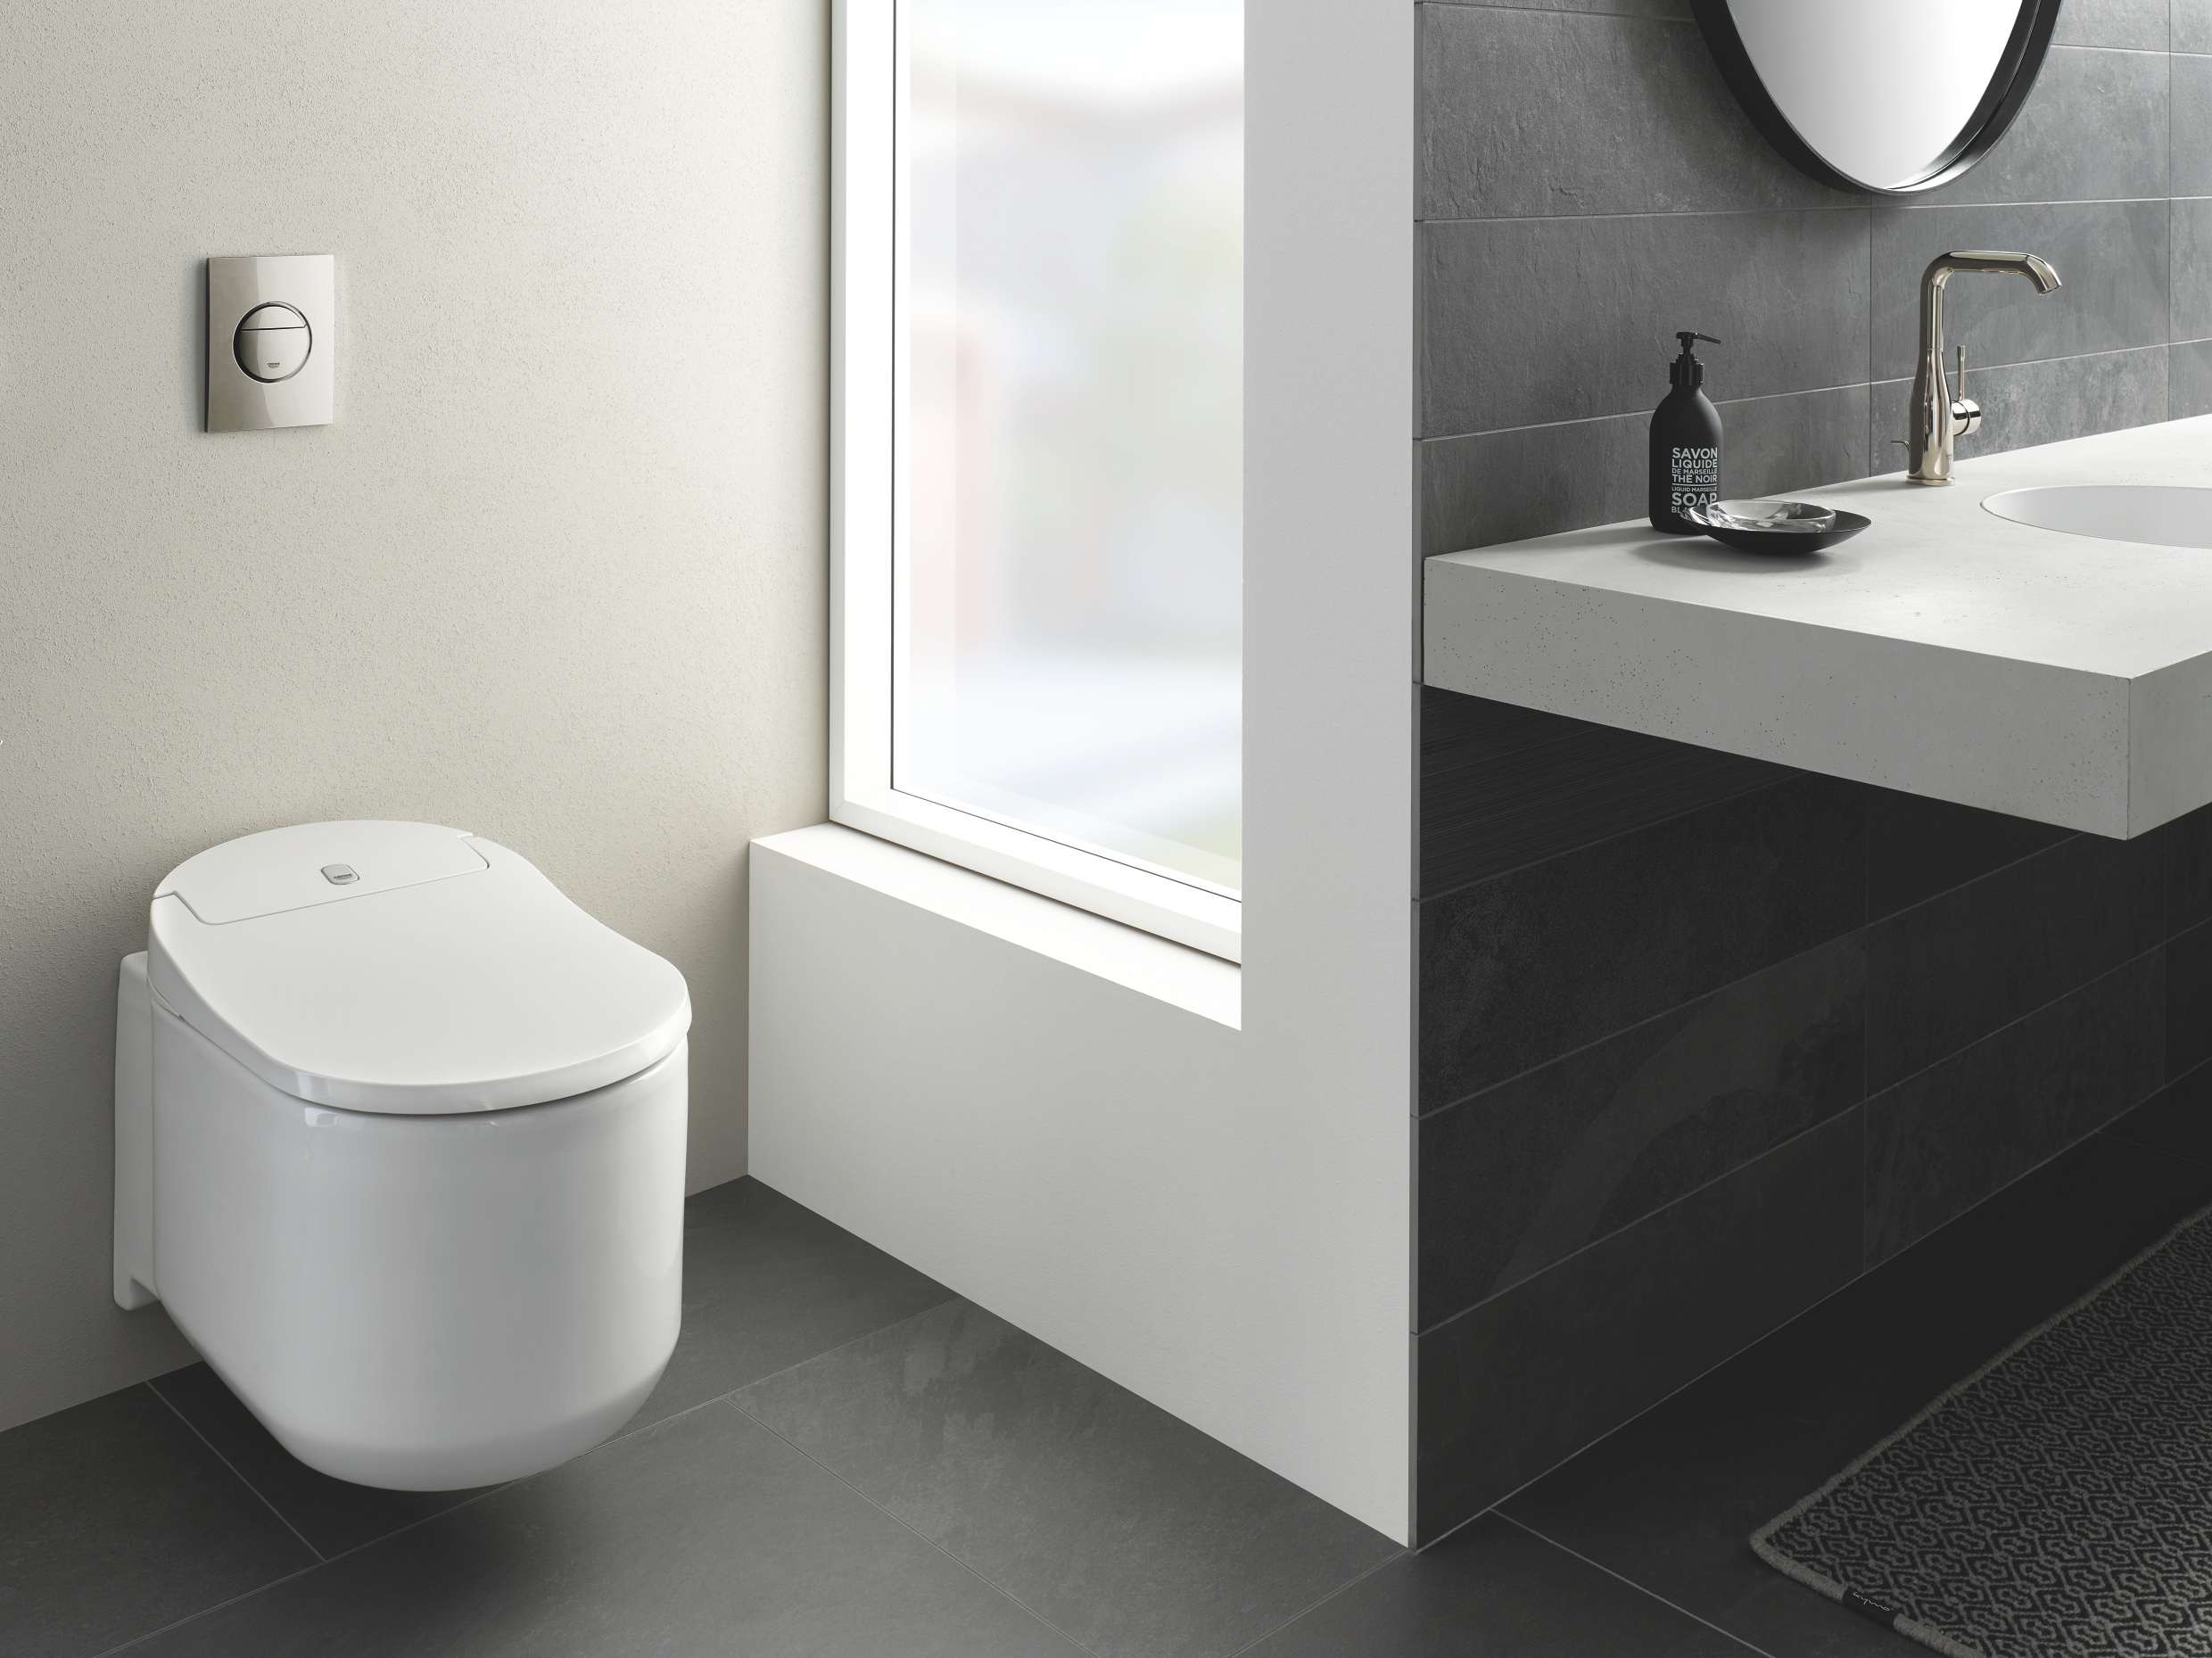 Creating a smart bathroom